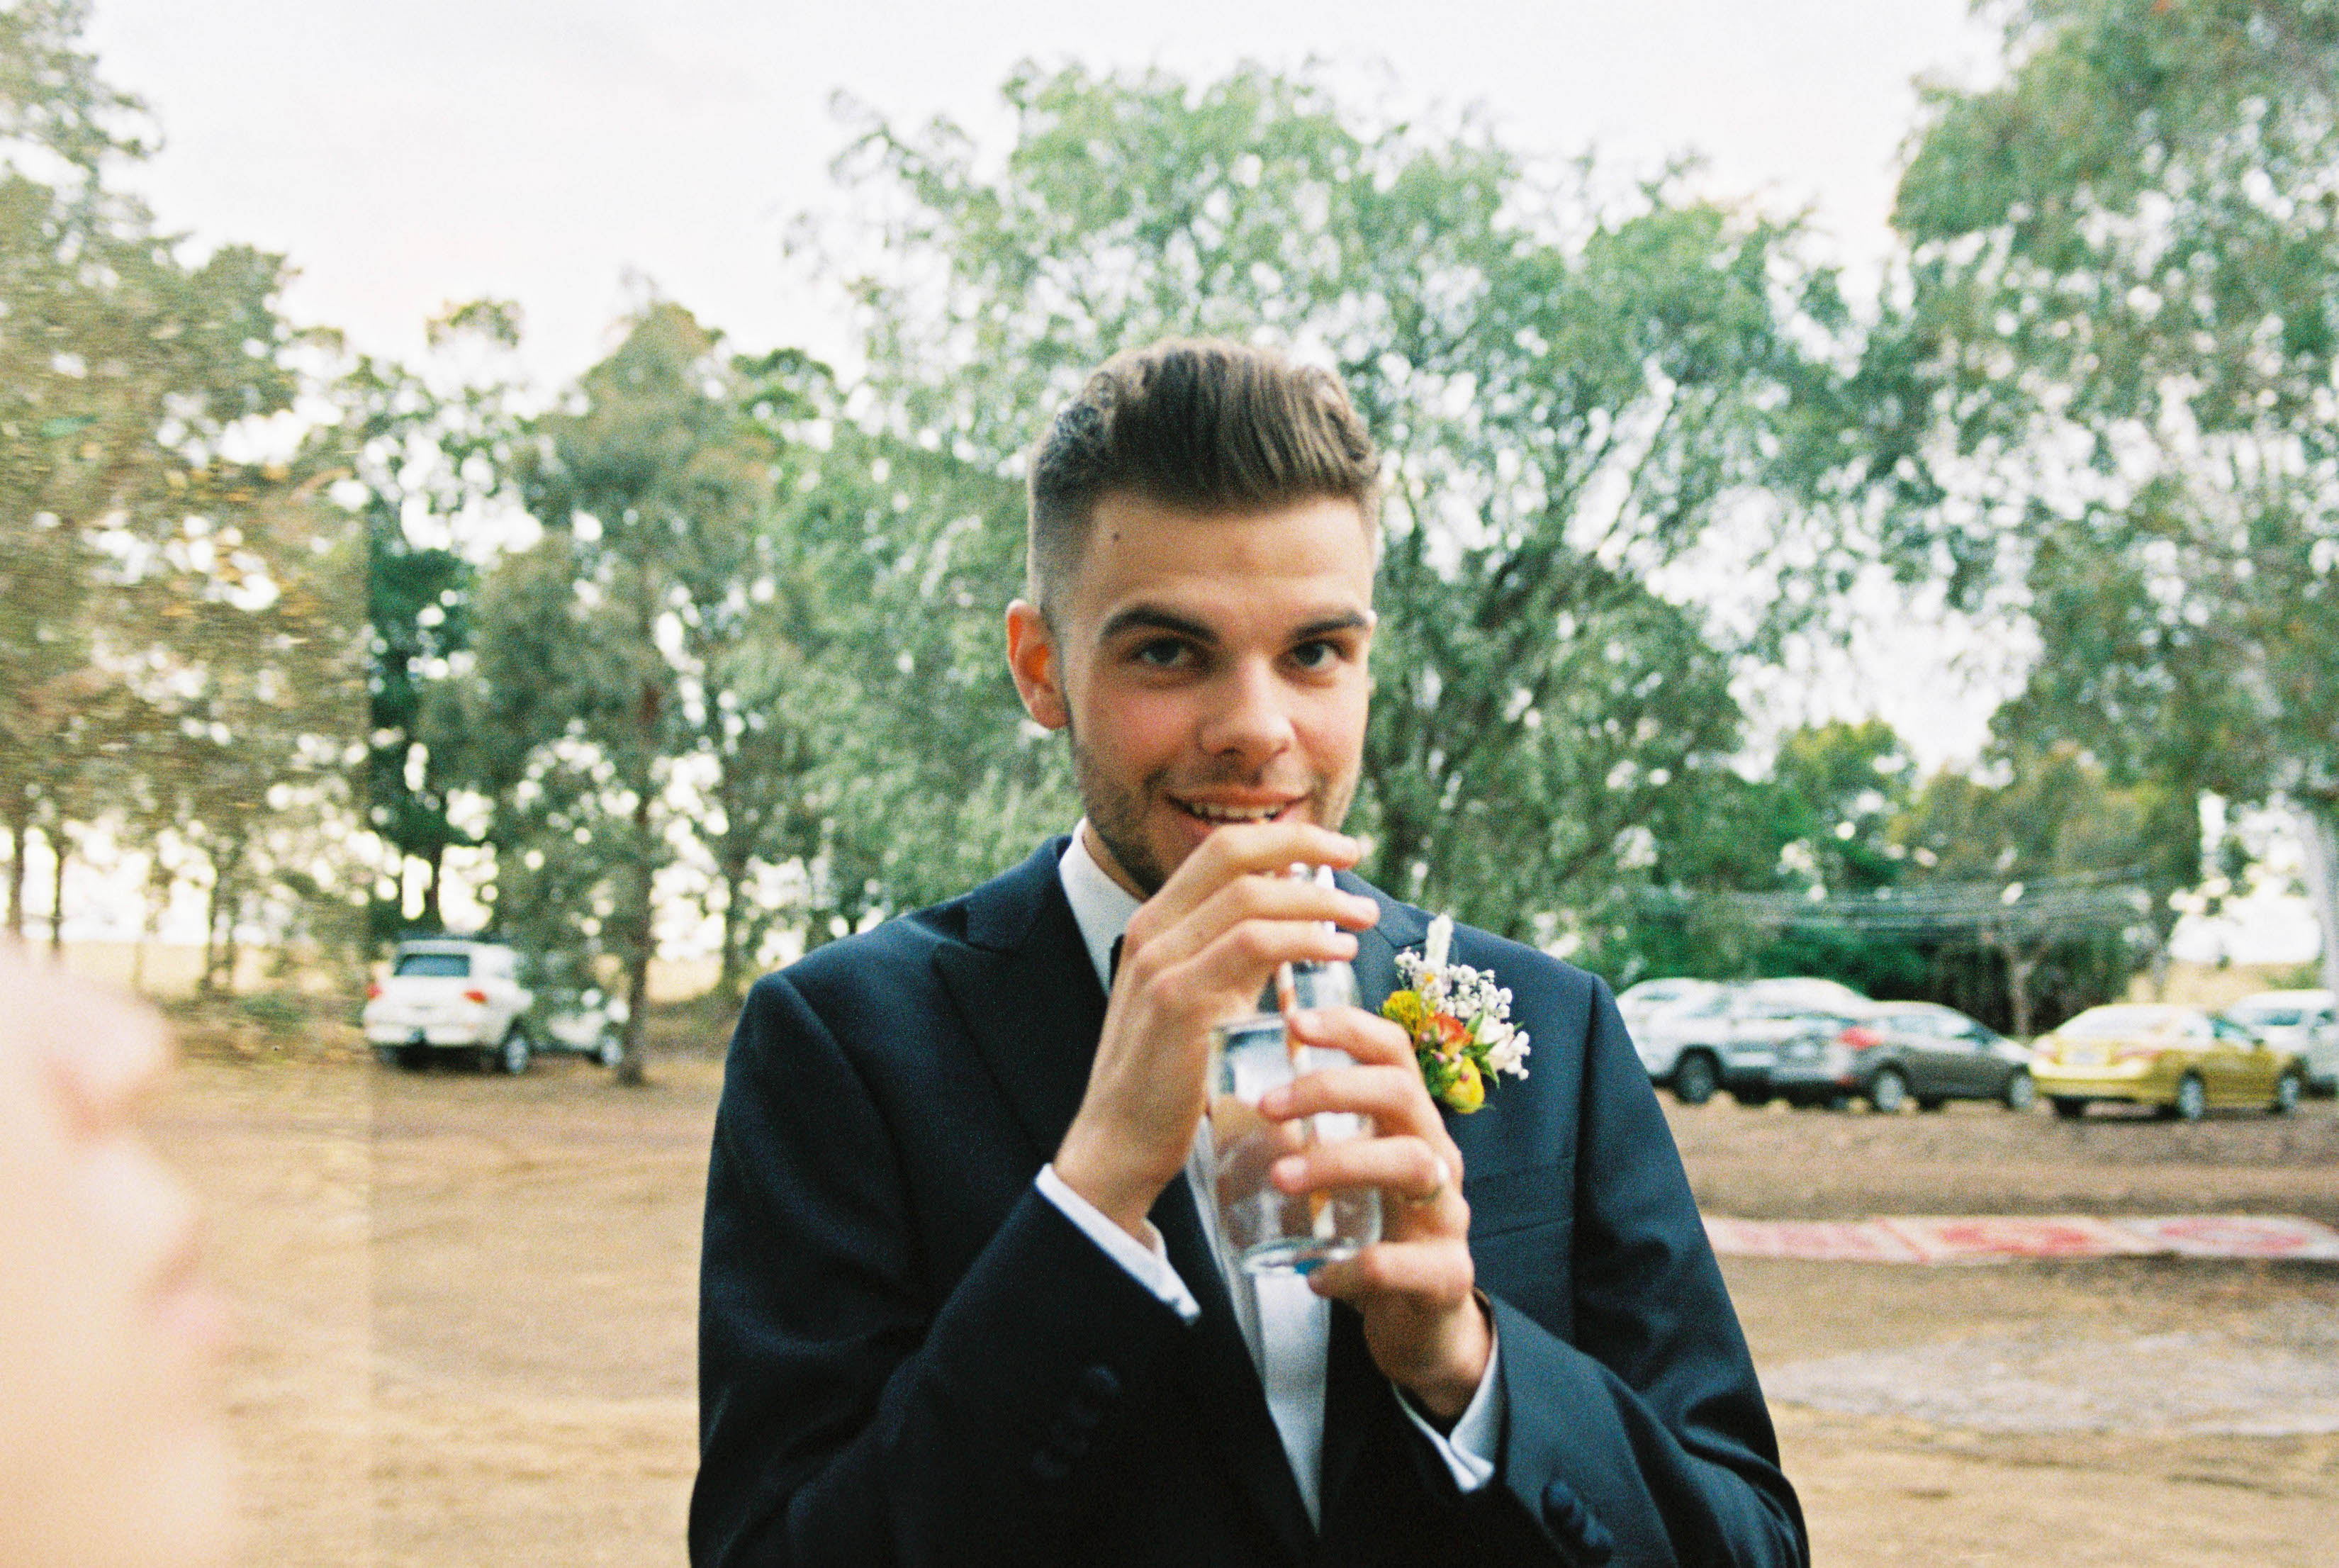 A photo of the groom smiling while he takes a sip of his drink taken by Bridgetown Wedding Photographer